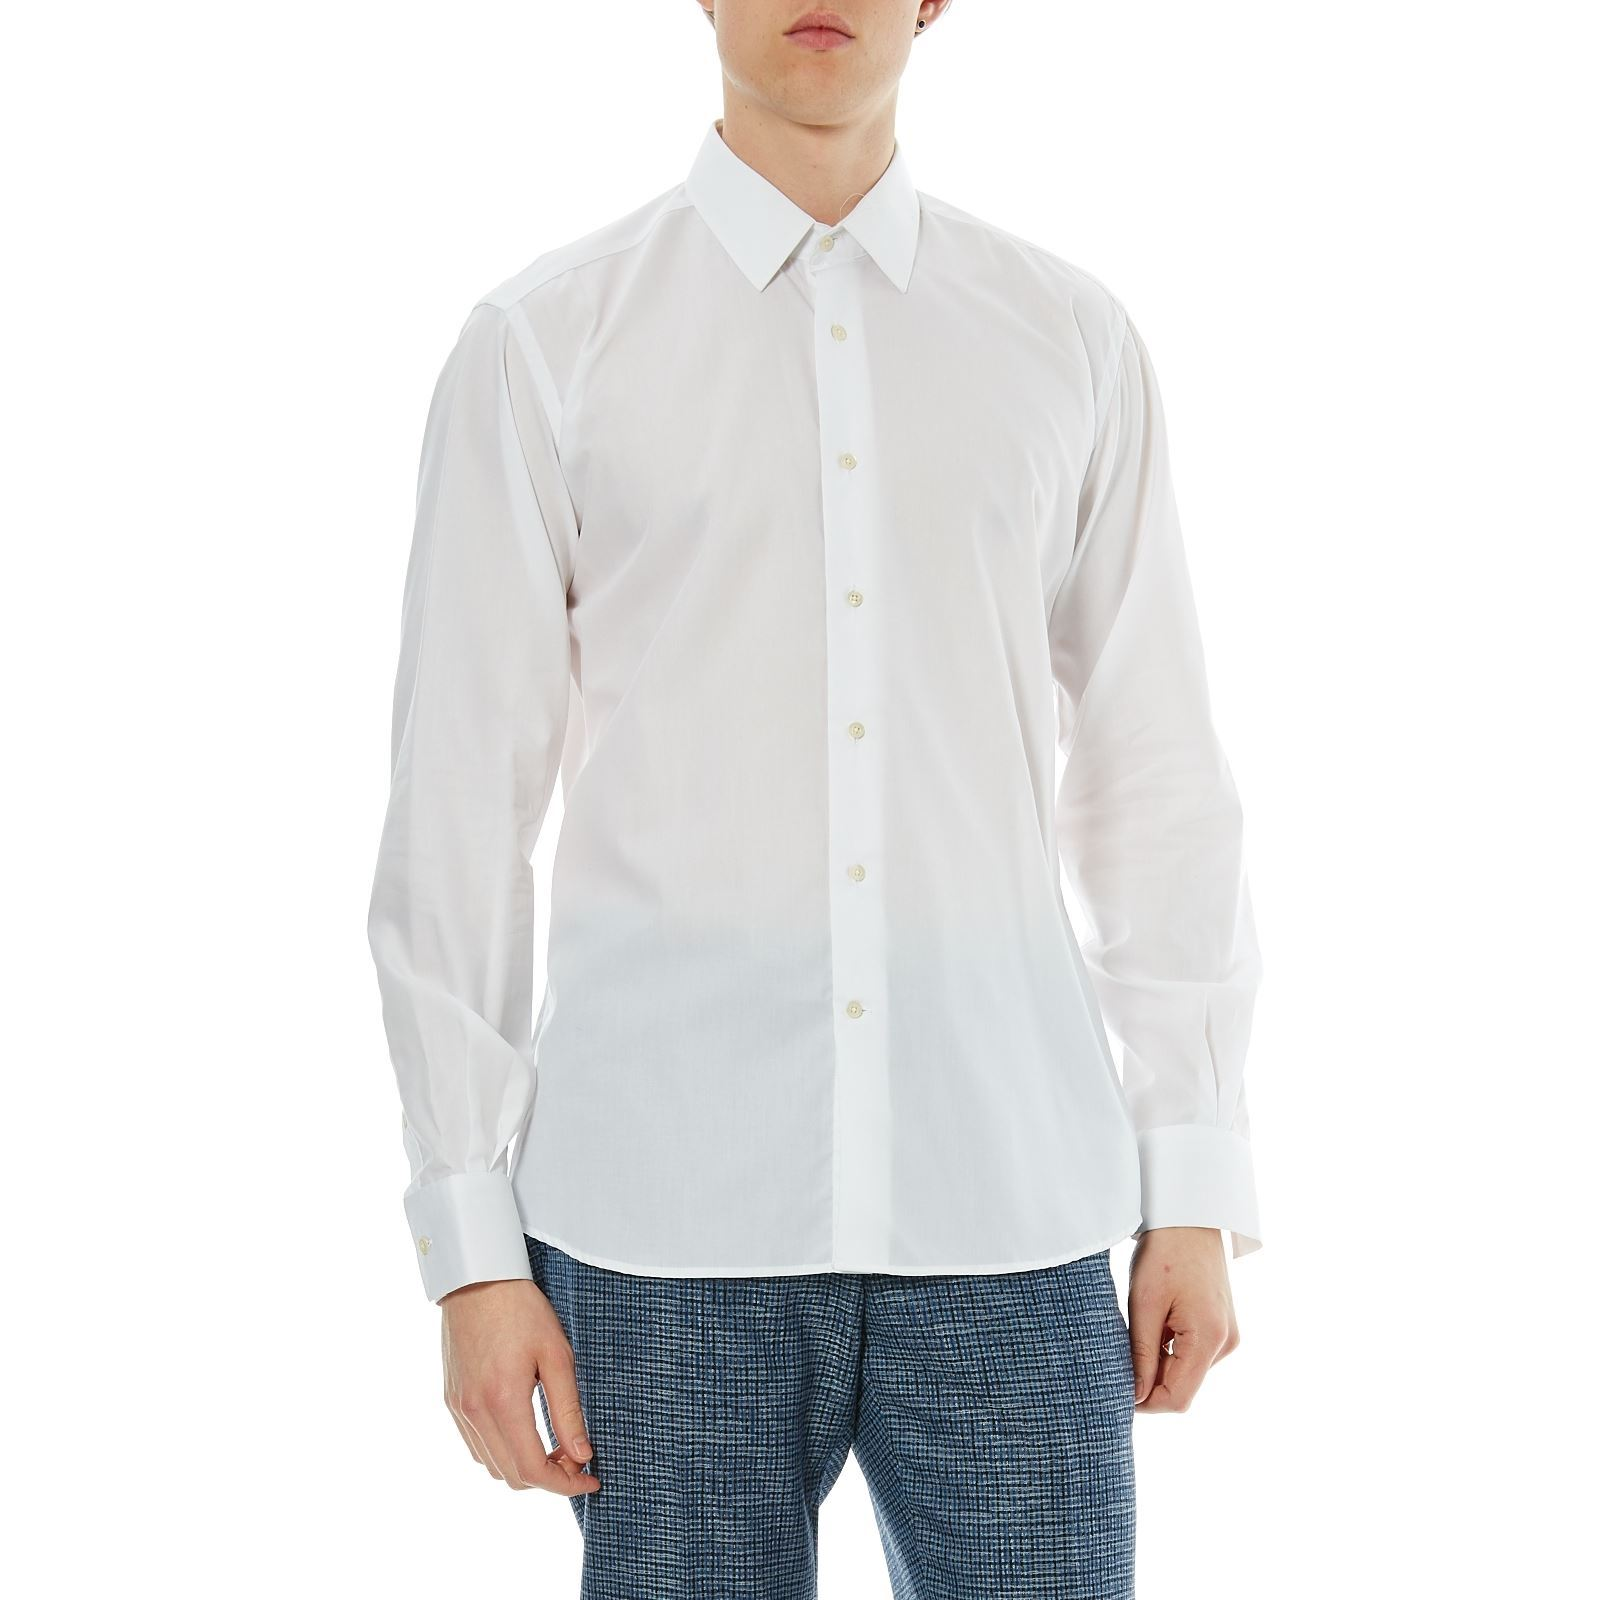 Karl V Chemise Manches LonguesBlanc Homme Lagerfeld nmwvN80